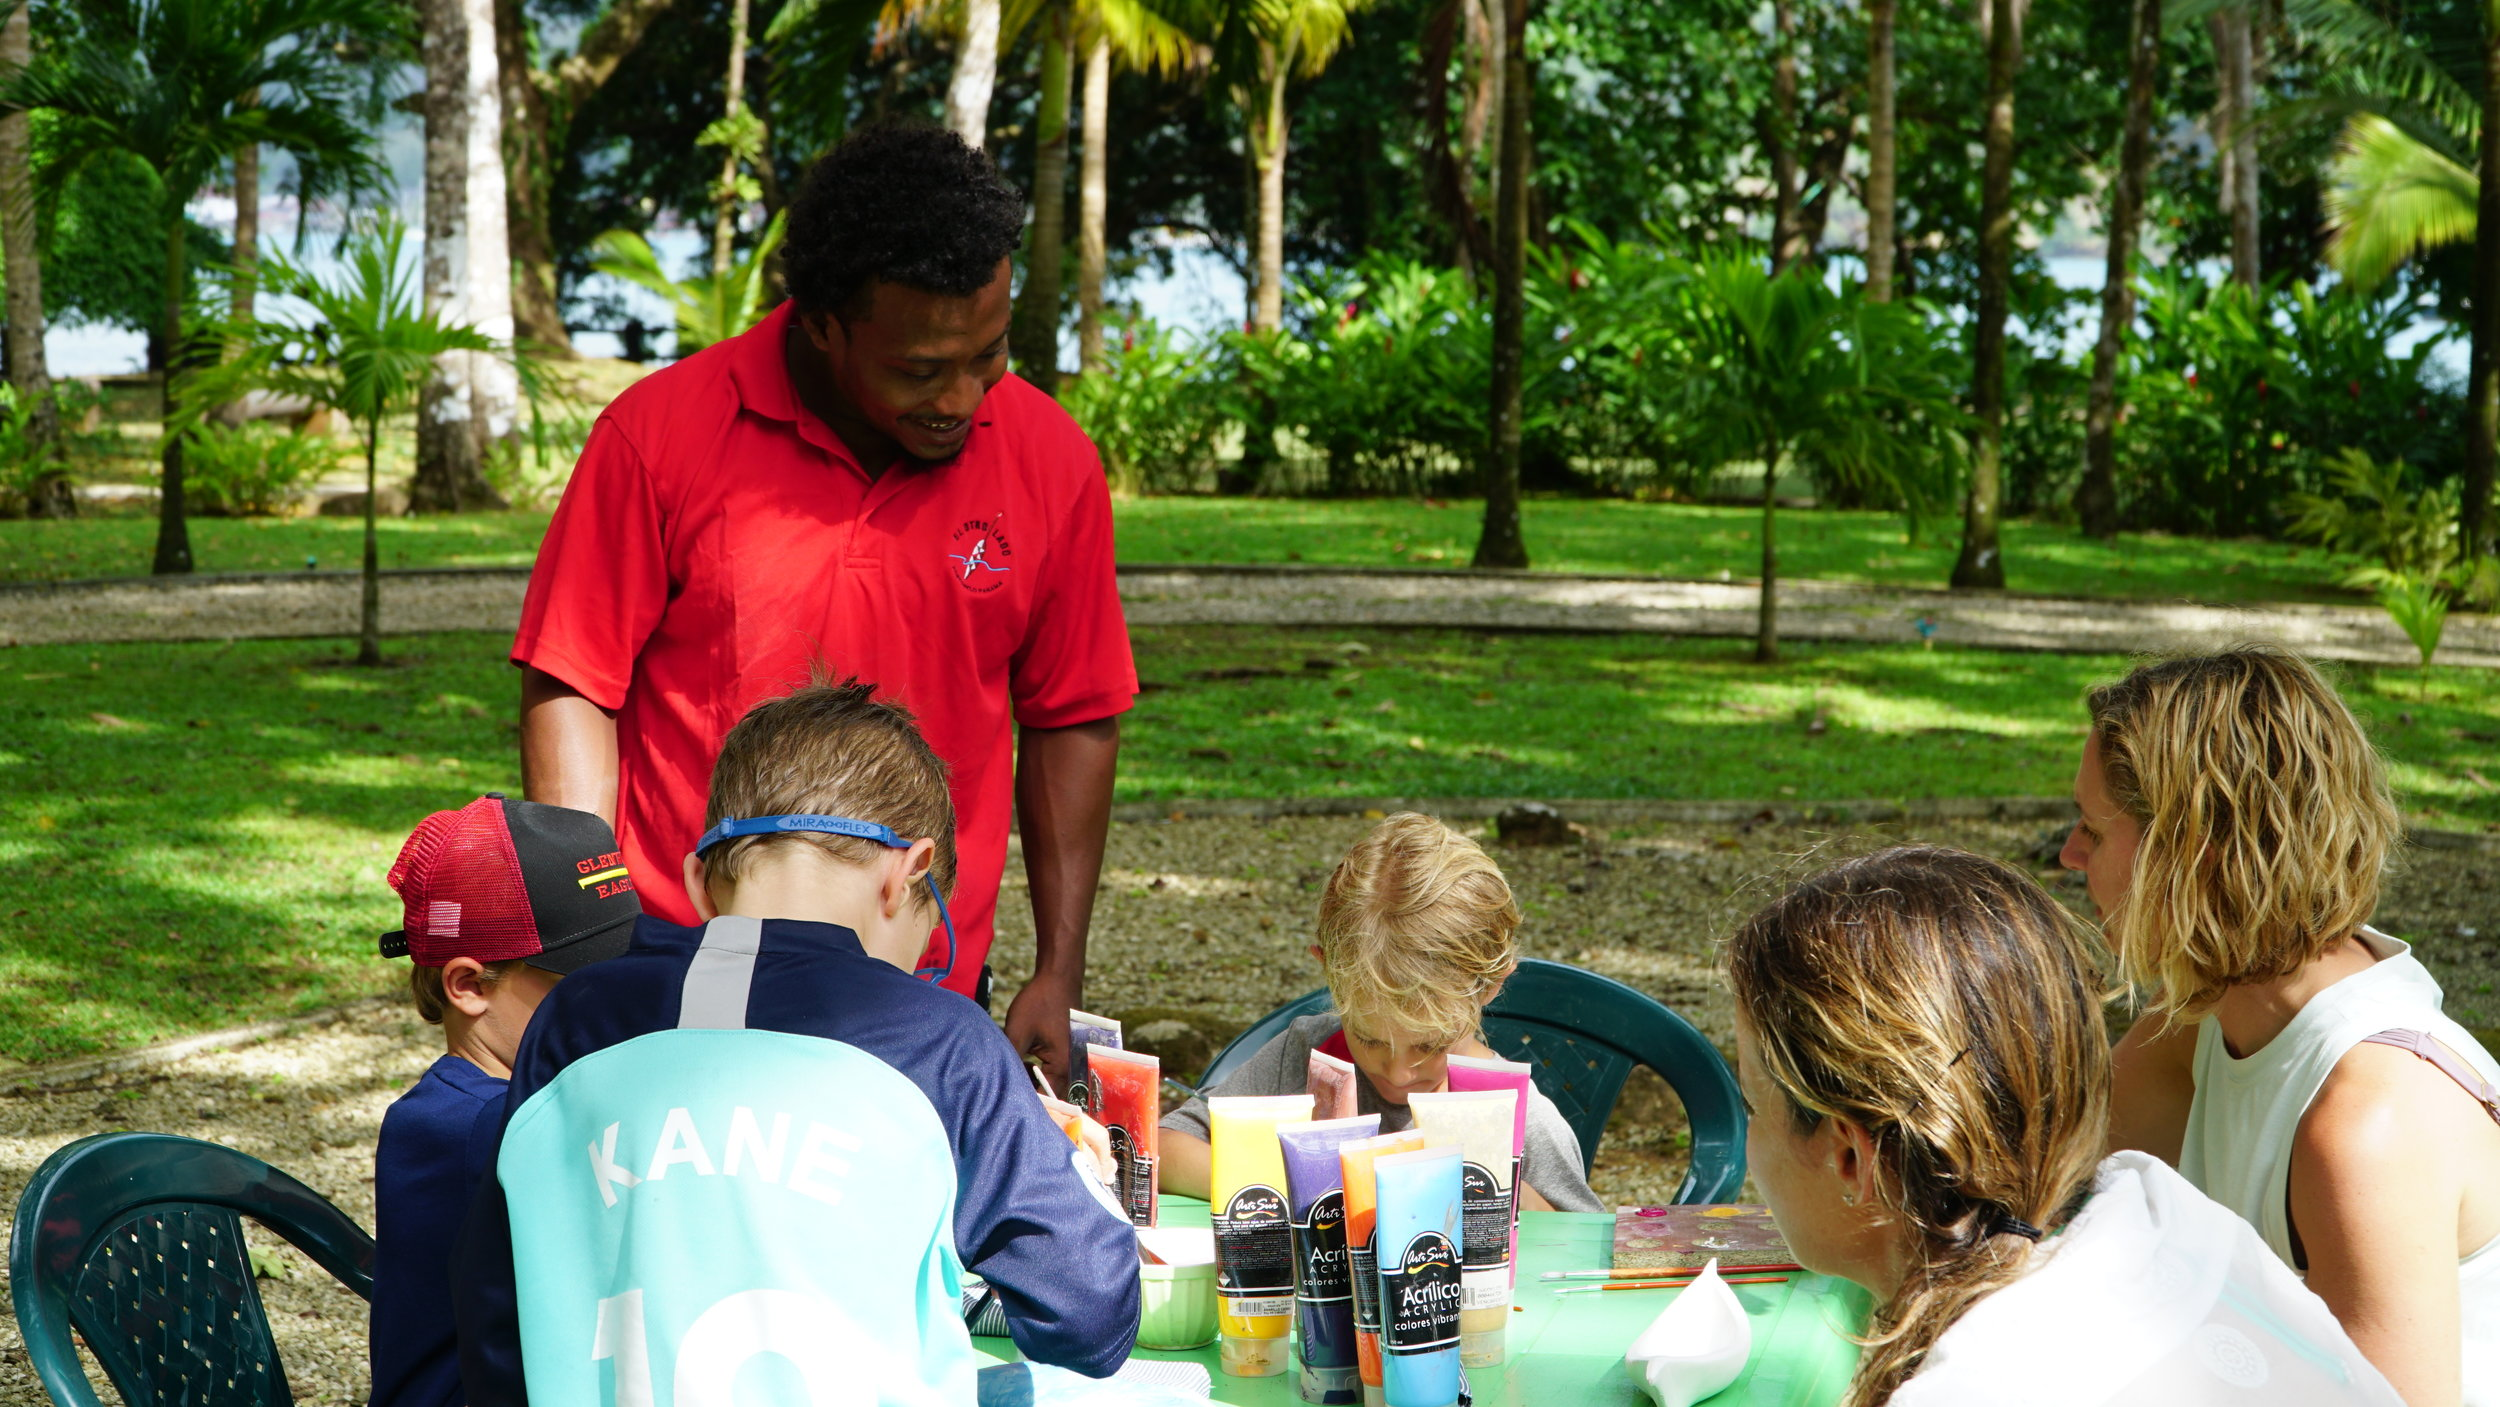 A local artist leads a painting class at El Otro Lado, a fun experience for adults and children alike.